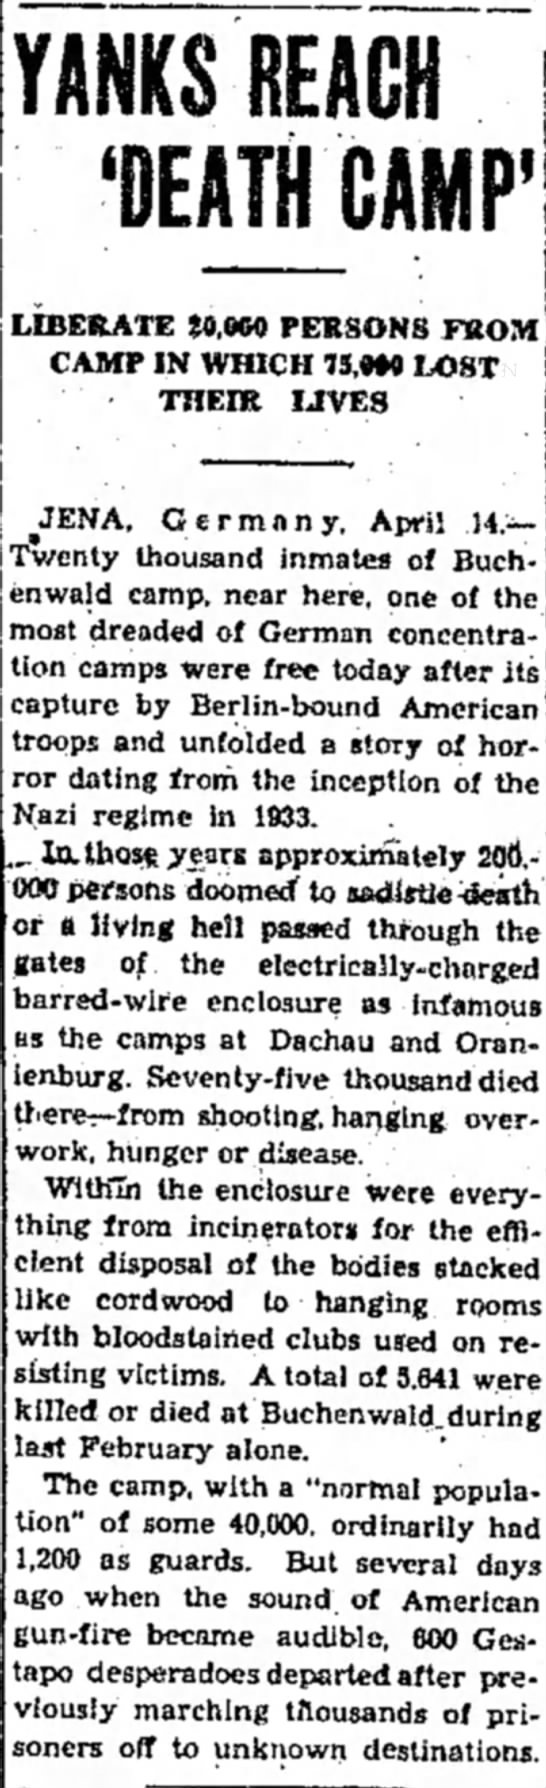 "U.S. Soldiers liberate Buchenwald Concentration Camp near Weimar, Germany - States_.-_ M "" m,mm~m IMIvK * RF 111 M ' 'DEATH..."